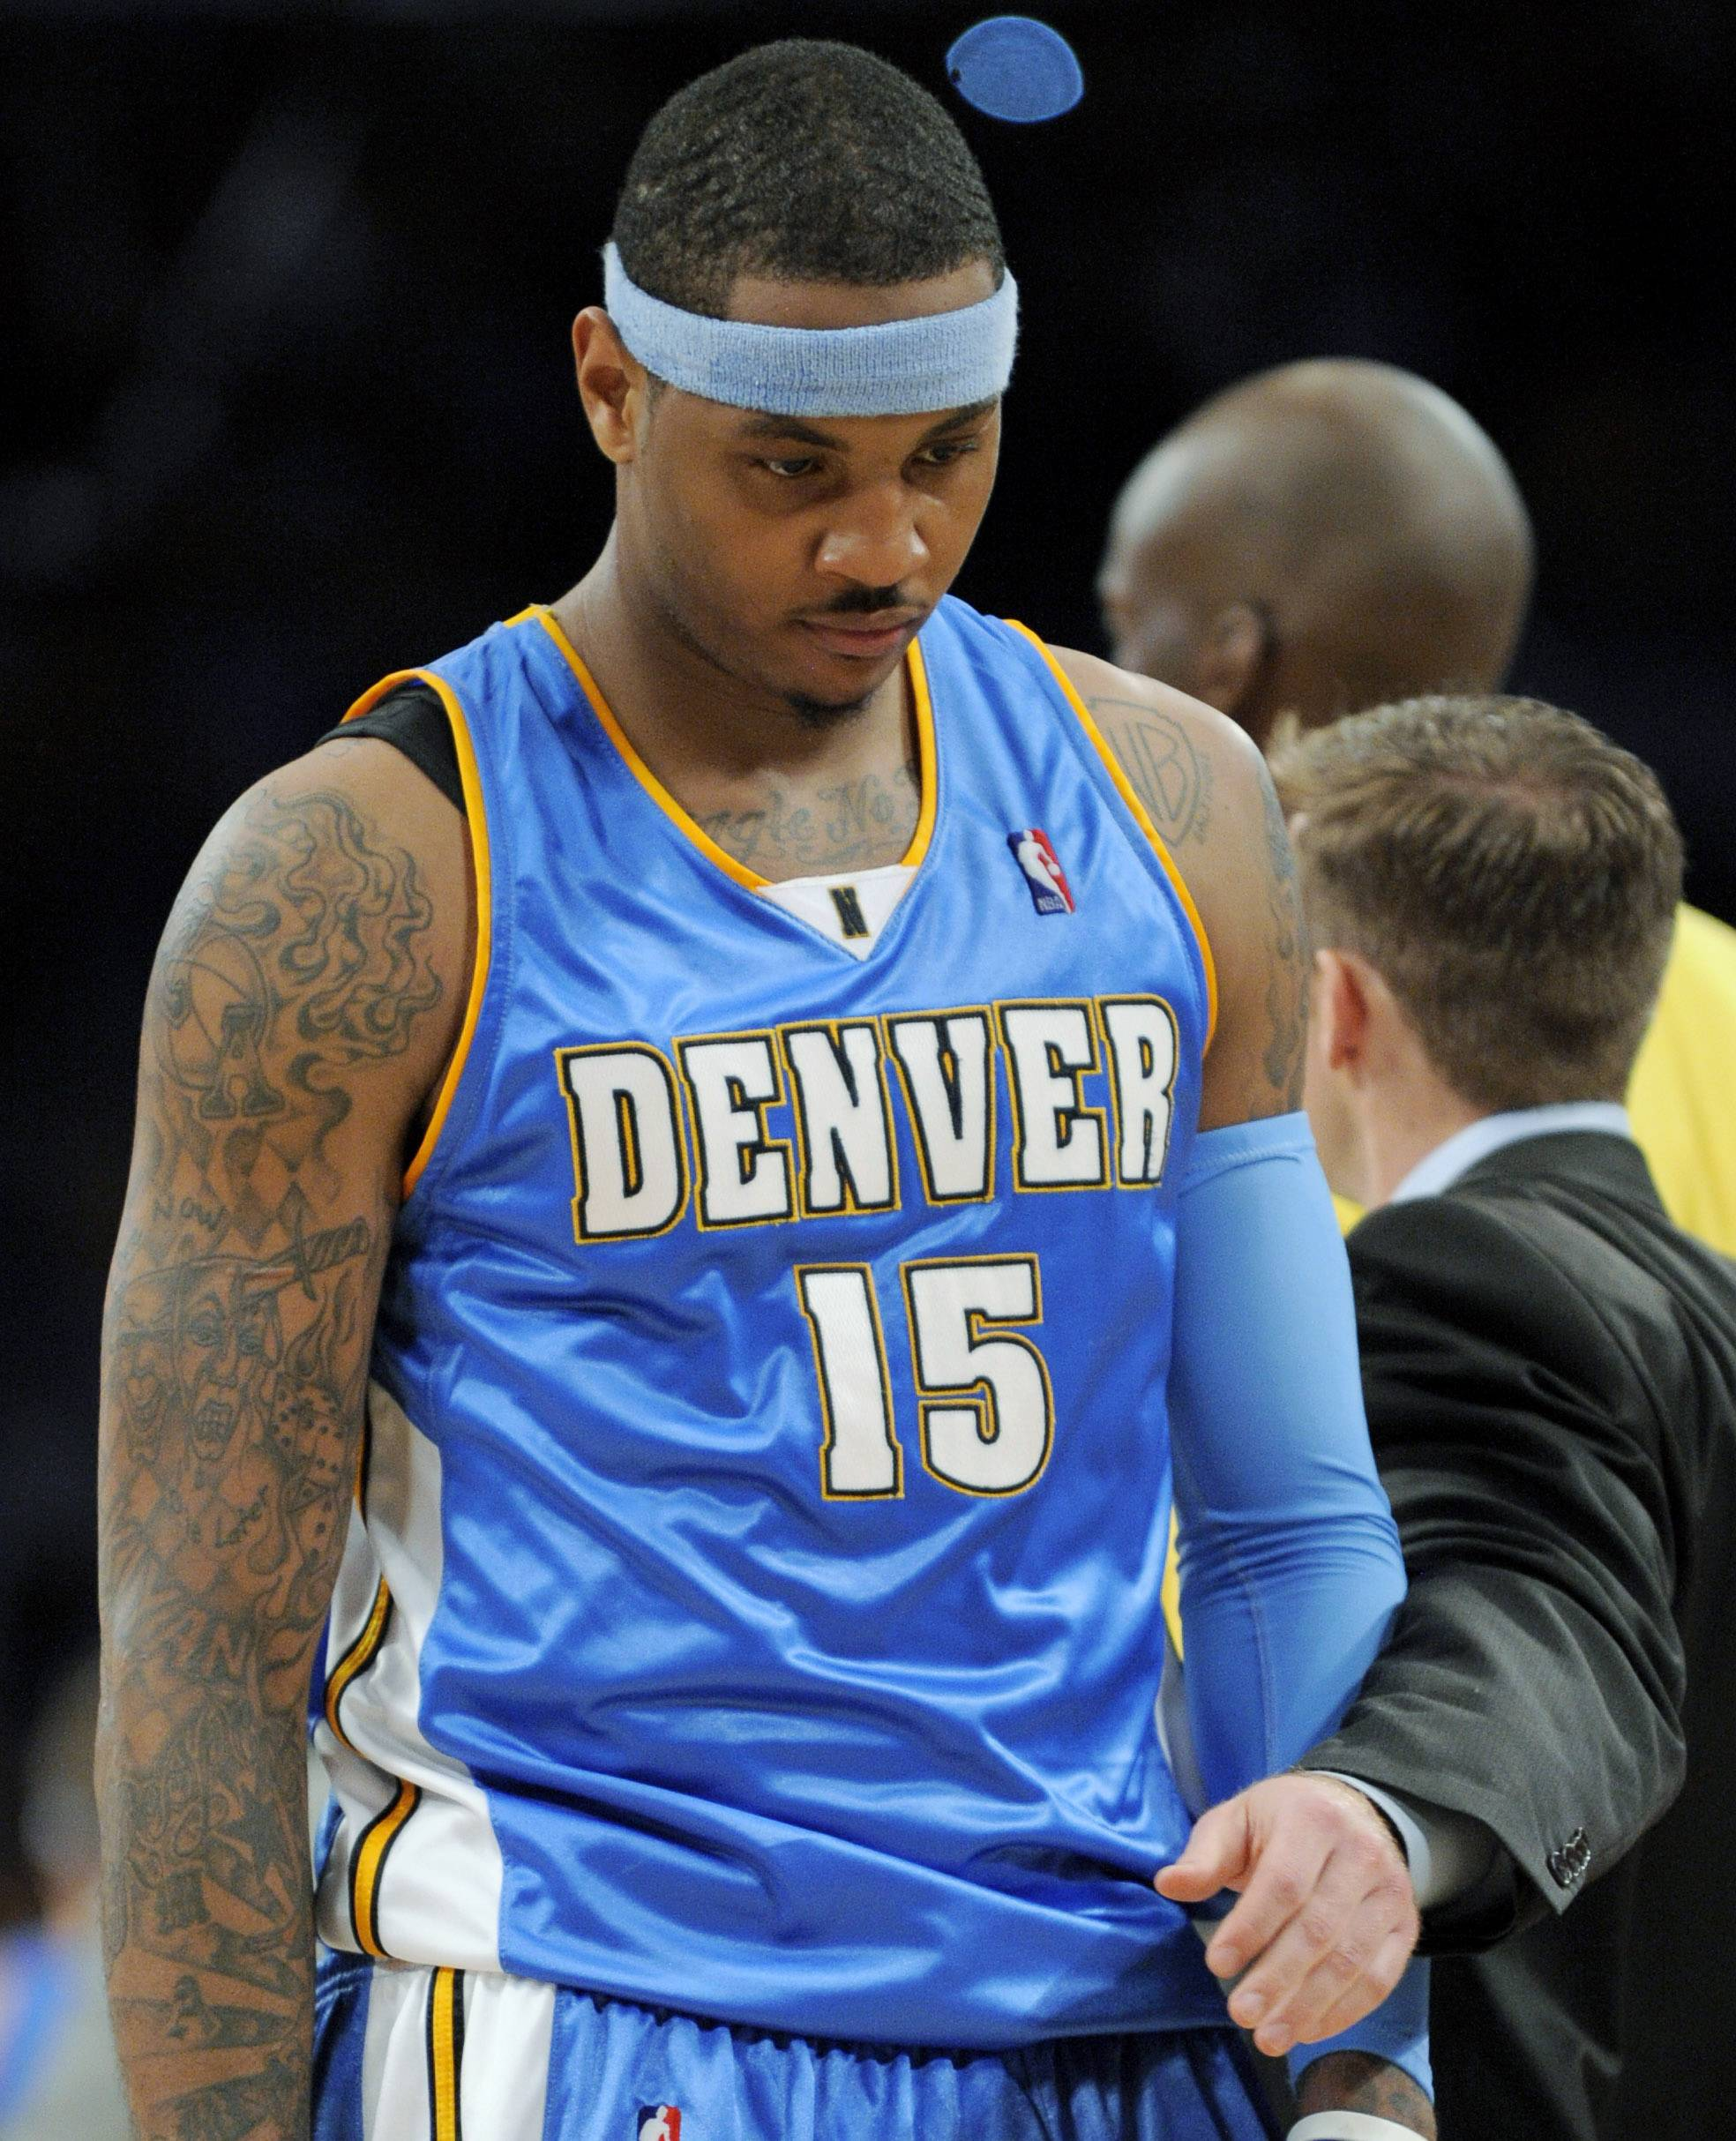 For the Bulls to acquire Carmelo Anthony, shown here with Denver in 2009, they'll have to make some tough decisions with their draft picks this week.